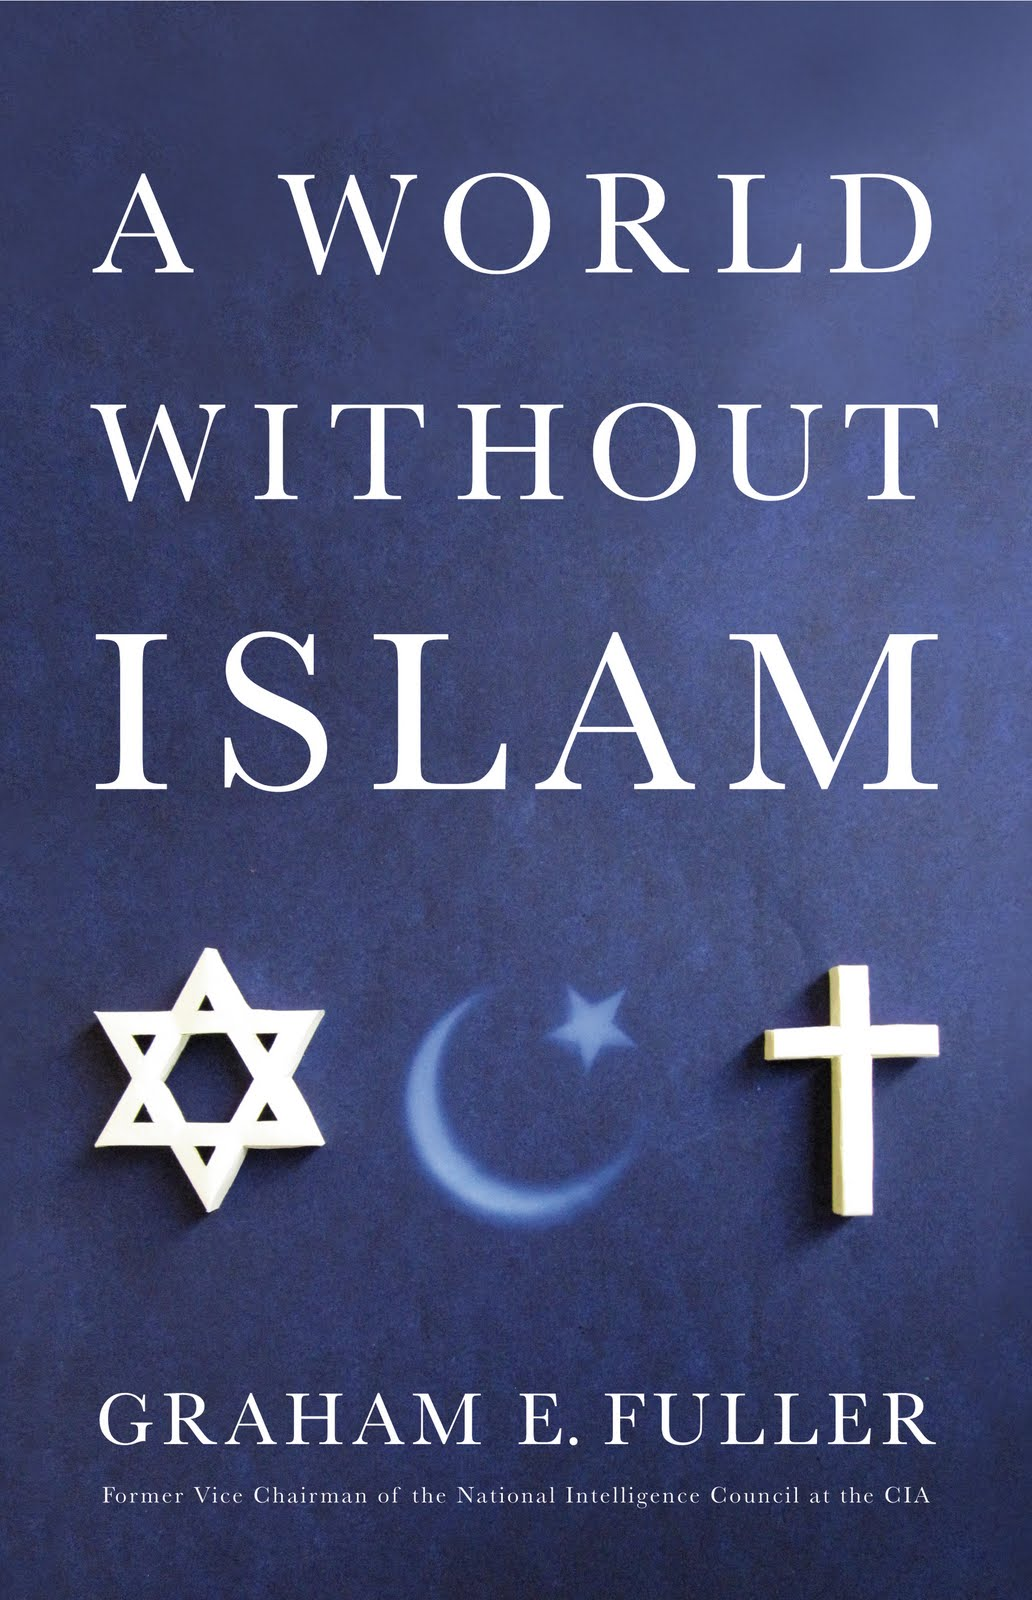 A World Without Islam by Graham Fuller